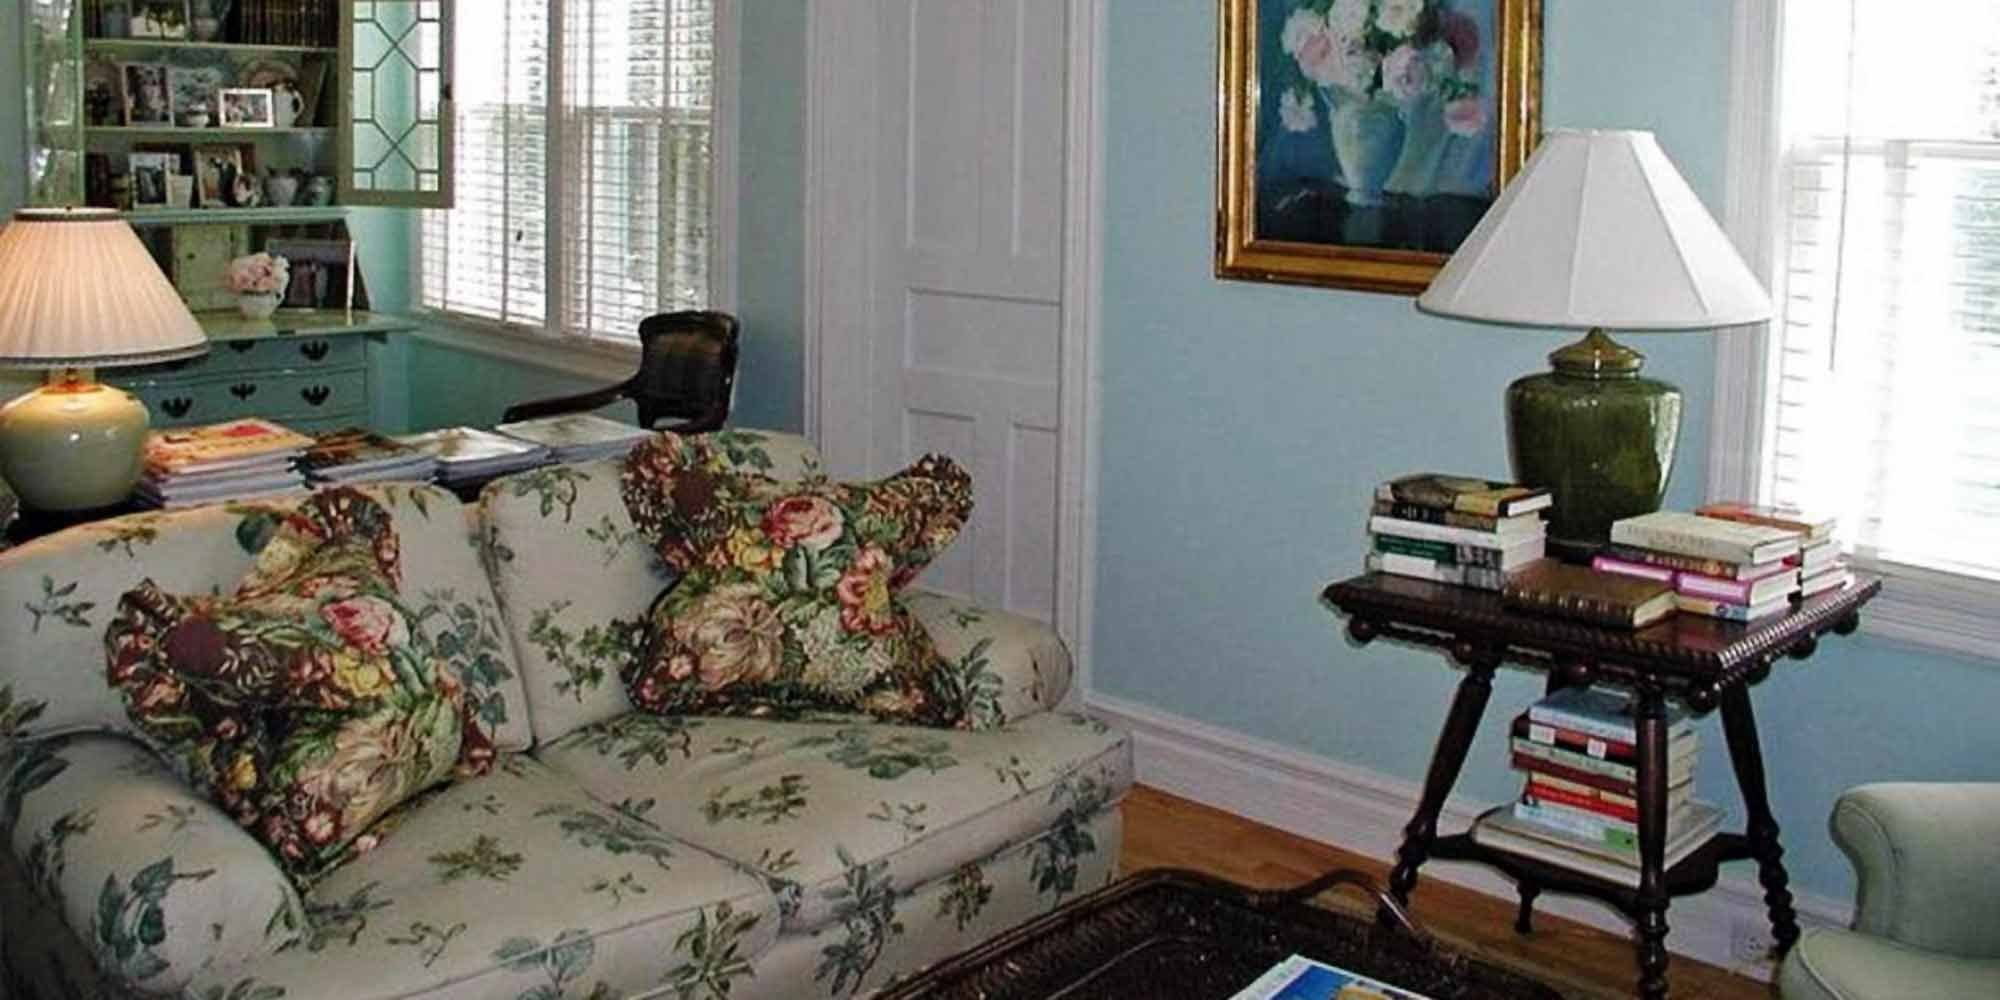 Family Room with Floral Couch